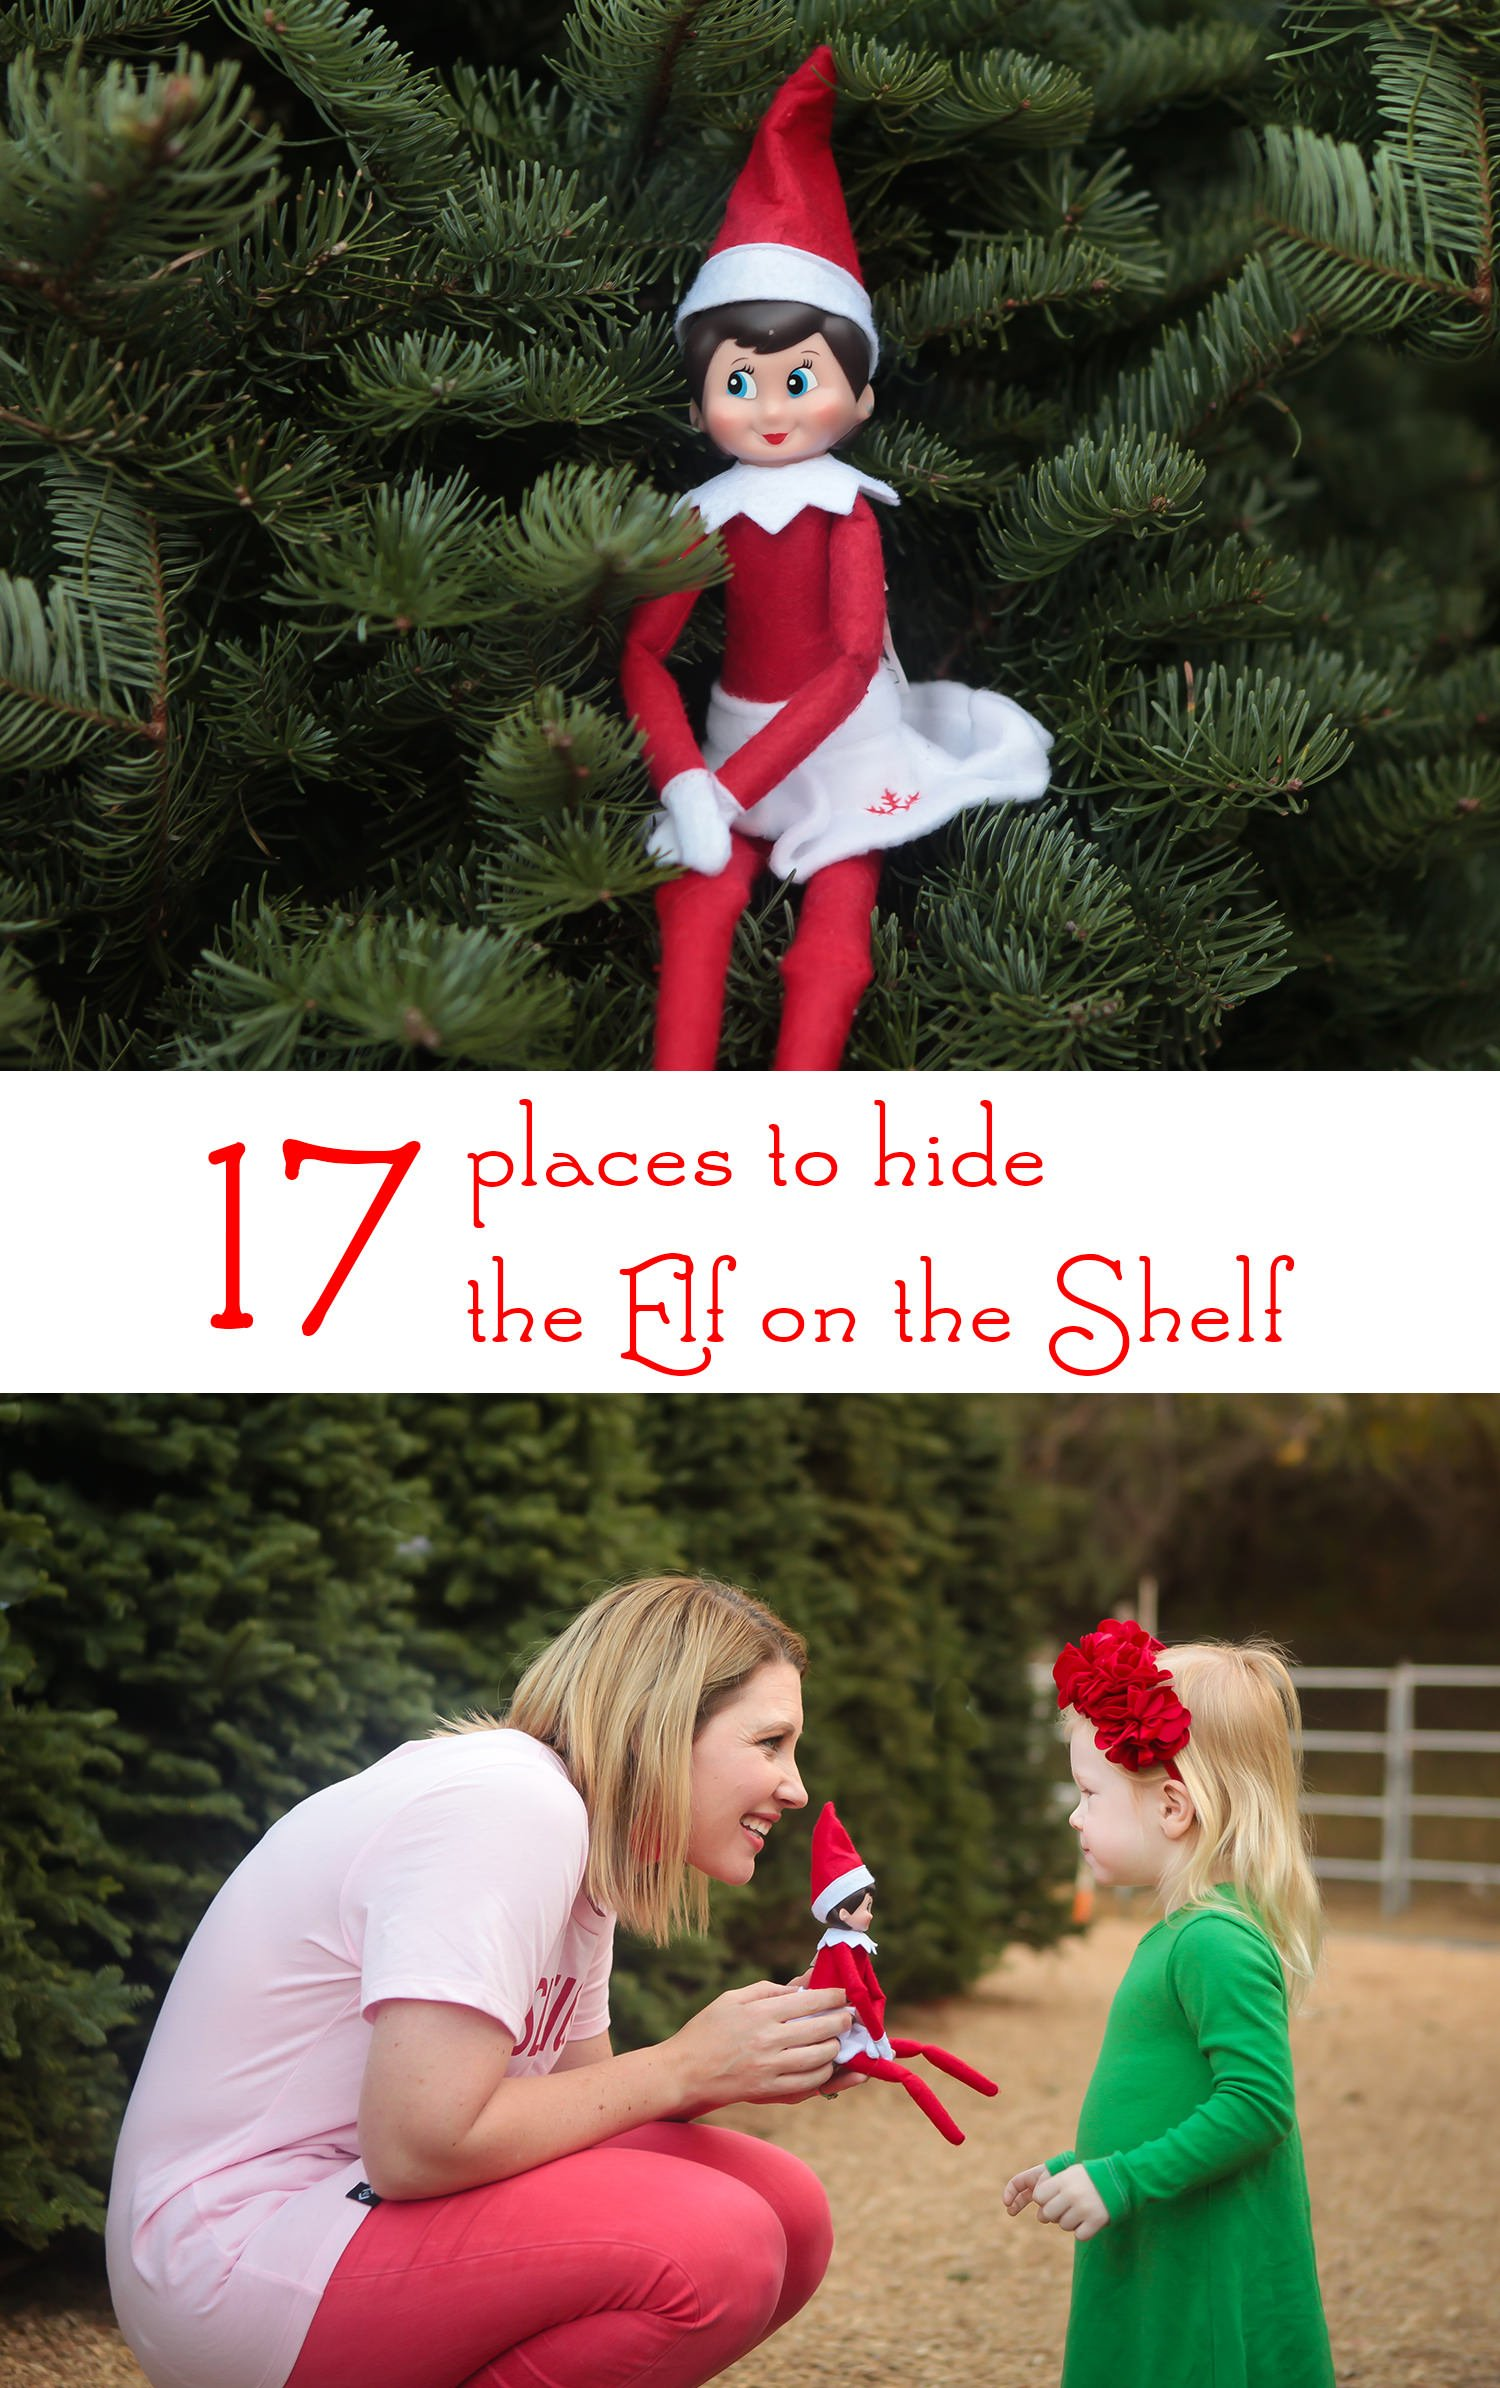 Looking for places to hide the elf on the shelf? These 17 ideas are just ADORABLE!